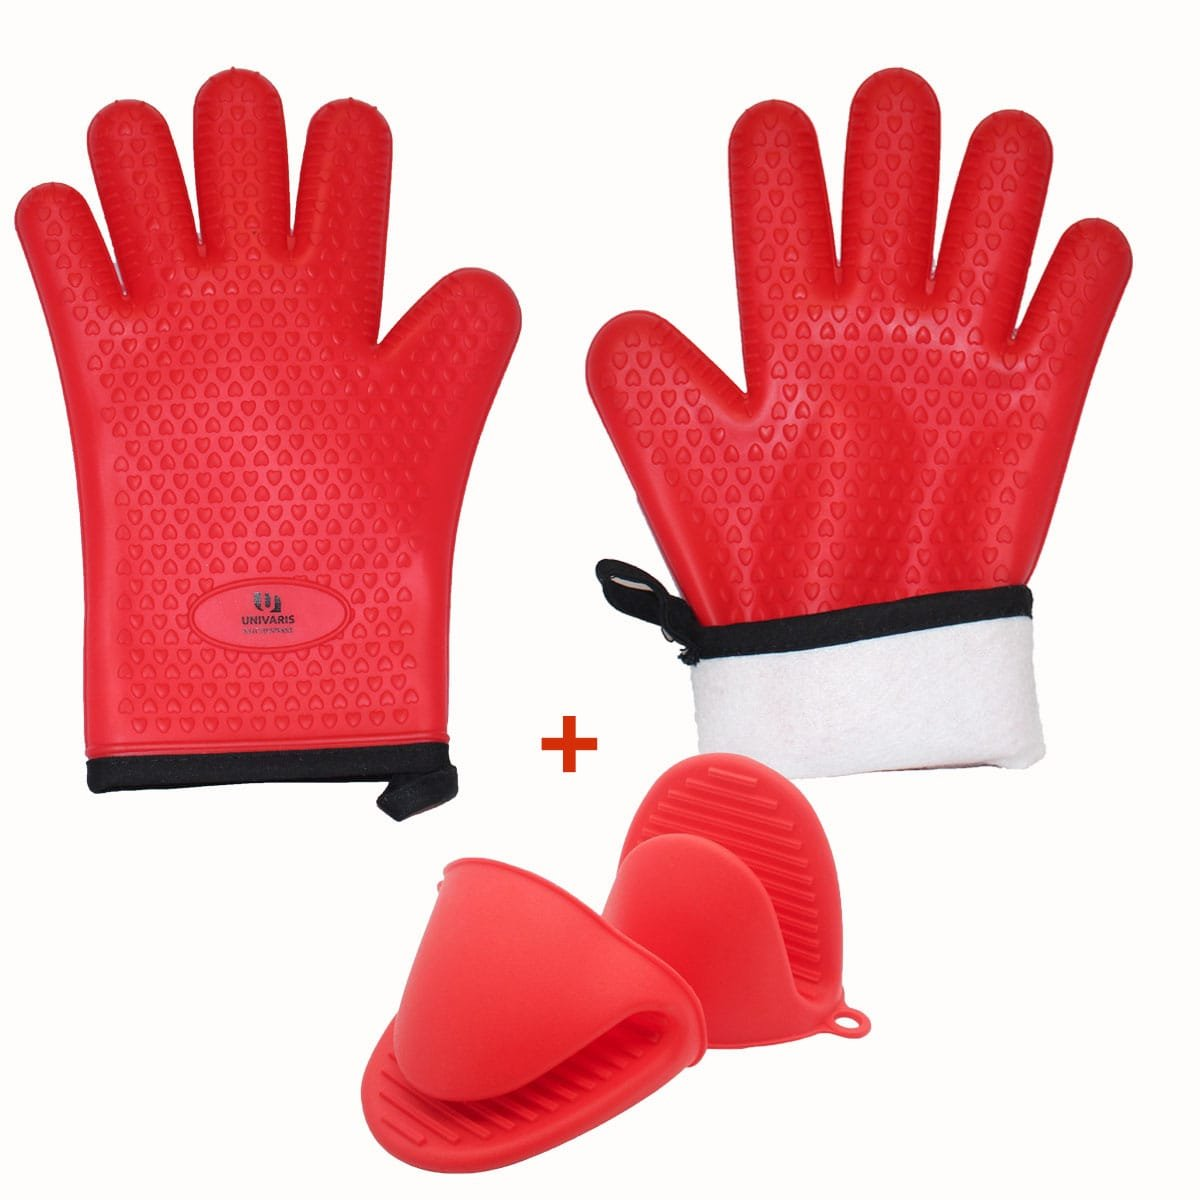 Univaris Oven Mitts BBQ Gloves and Mini Mitts Potholders Pair - Quilted Inner Cotton Lining and Silicone Heat Resistant and Waterproof | Premium Quality and Versatile Use|-Cooking, Pizza, Microwave, Baking, BBQ Instant Pot and Grilling Gloves, Mitts and Po